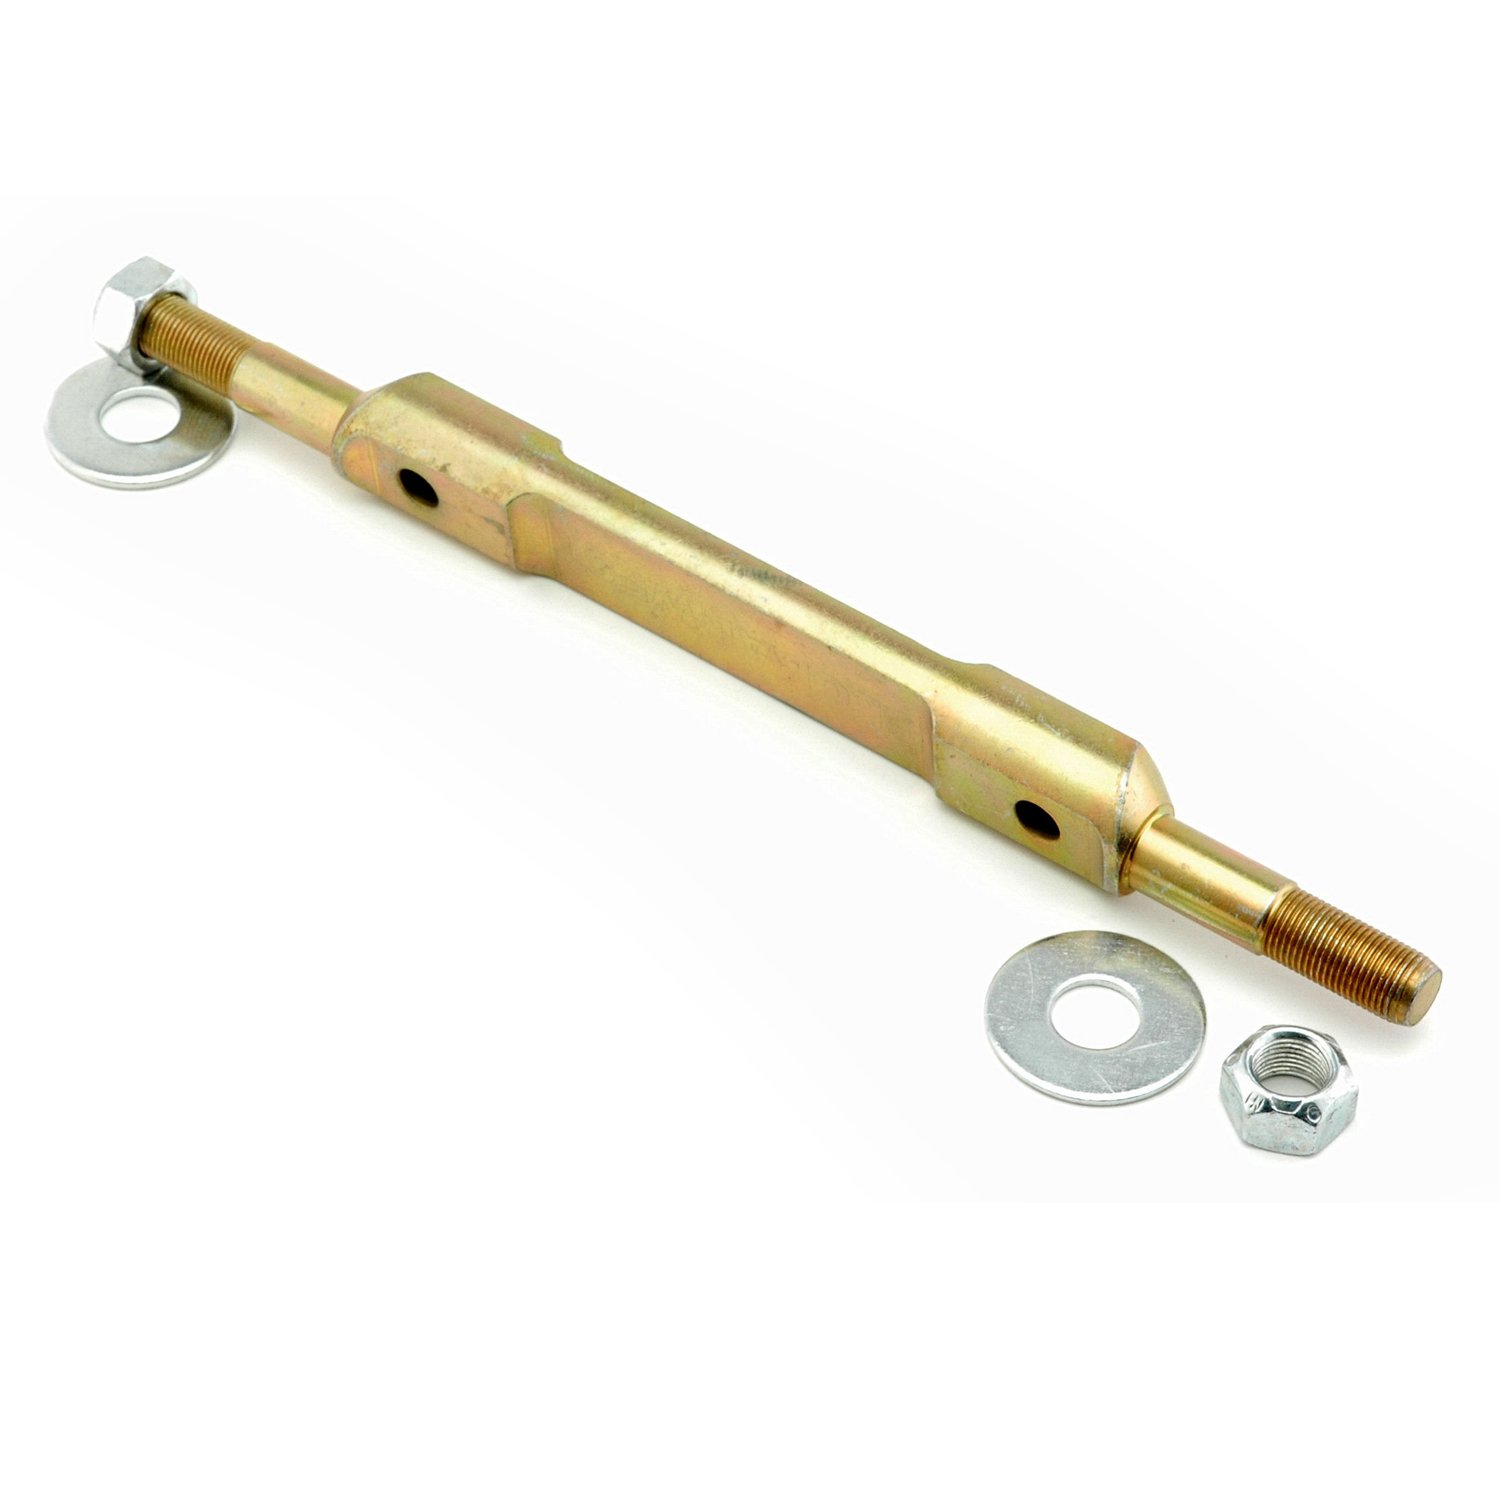 Global West Suspension 702 Upper Control Arm Shaft